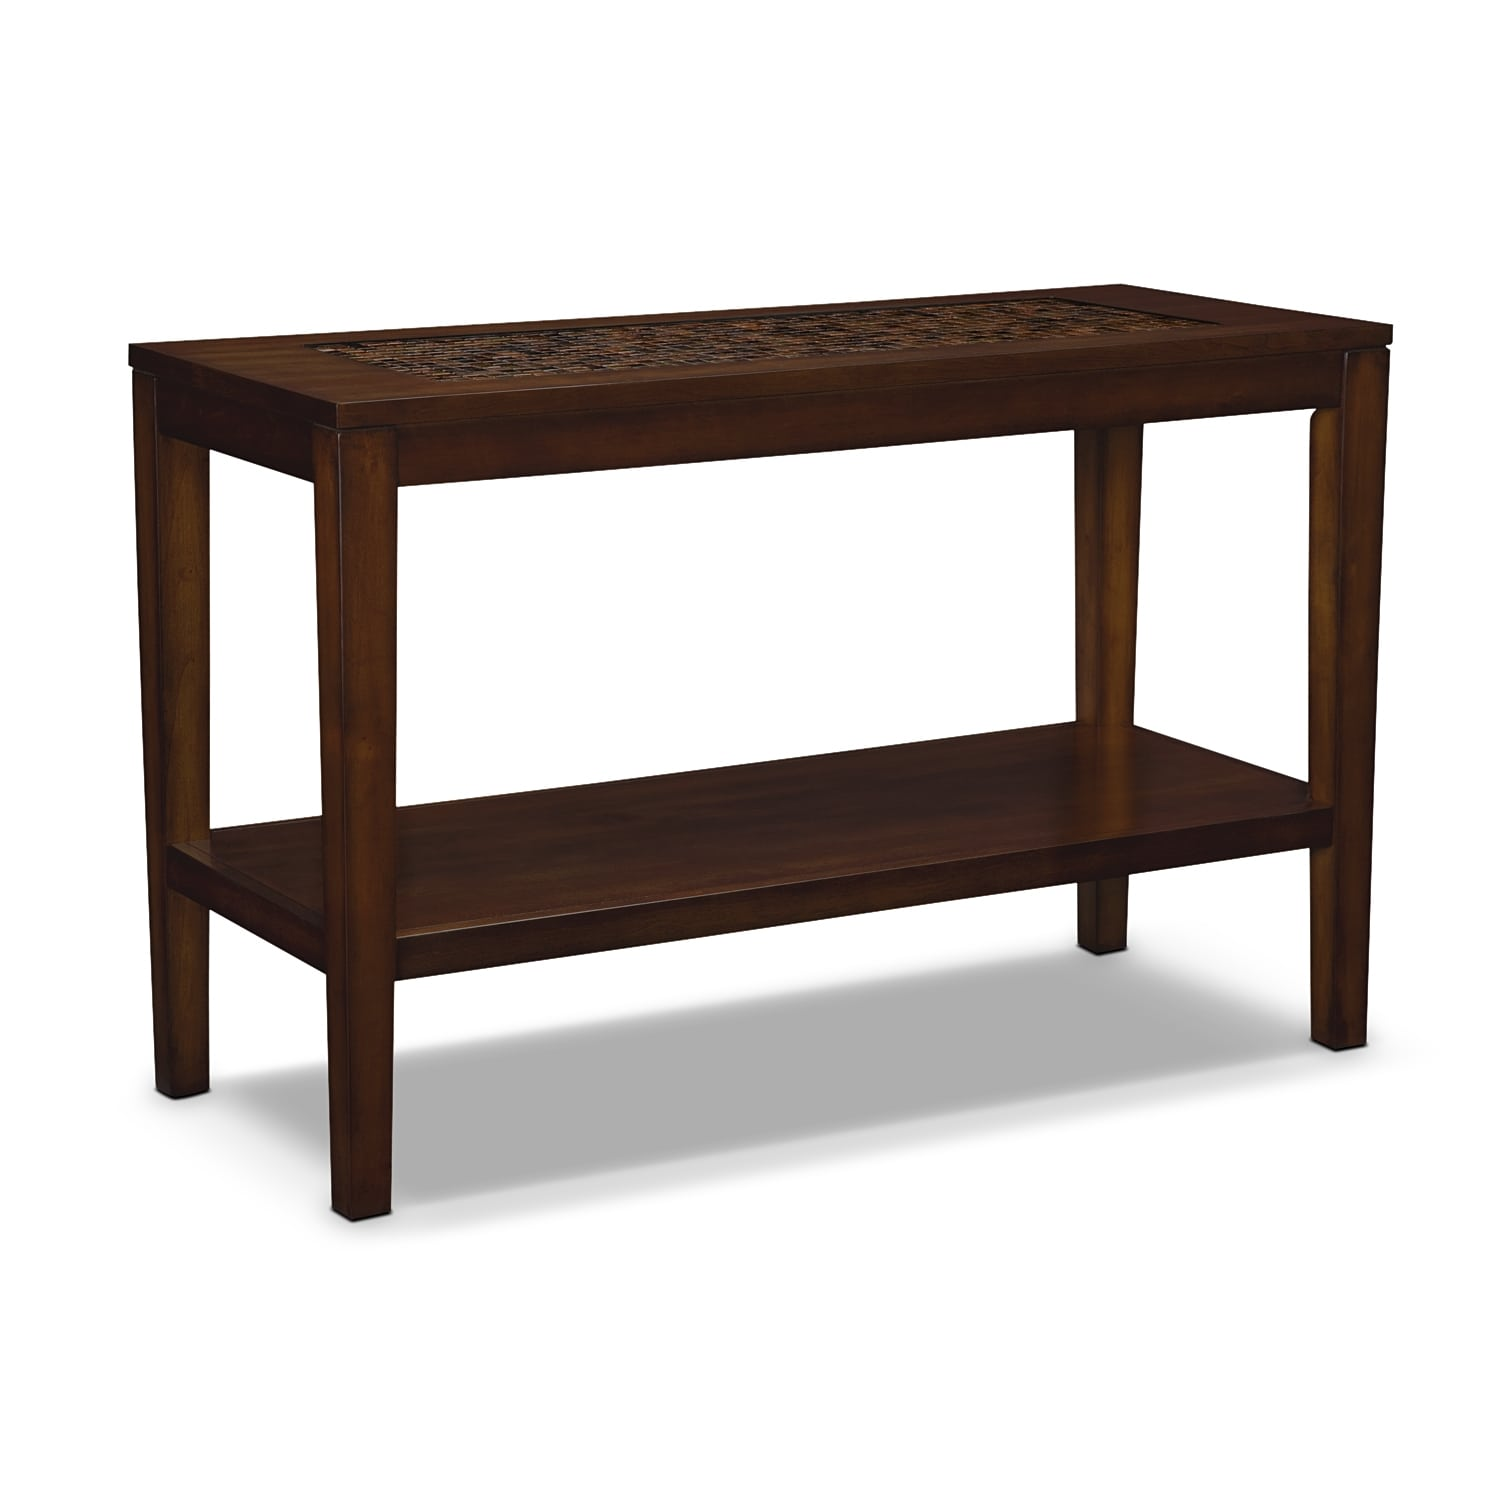 Carson Sofa Table - Brown | Value City Furniture and Mattresses